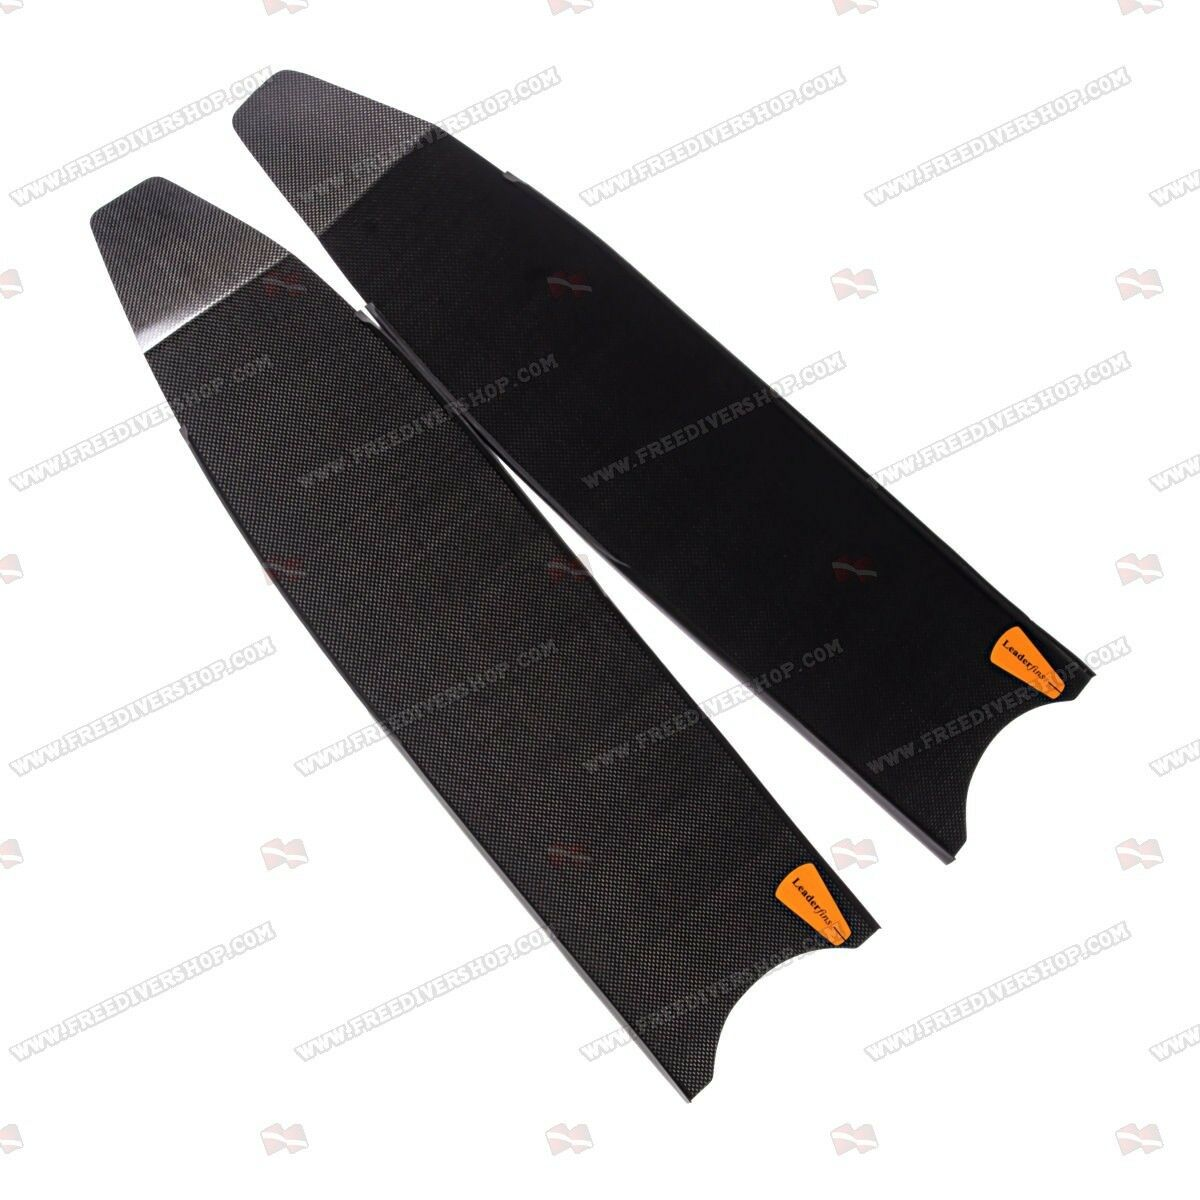 Leaderfins Wave Carbon Freediving Spearfishing  Blades (1 Pair   2 Blades)  exciting promotions